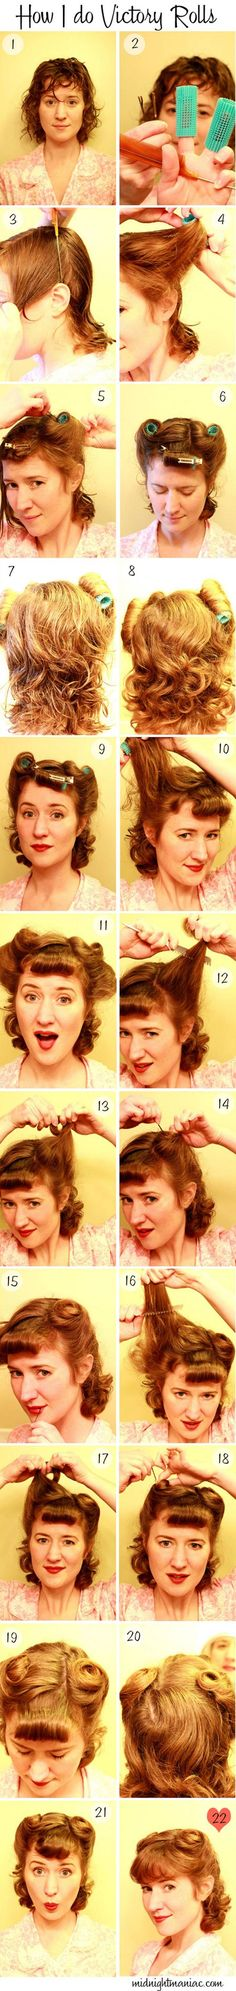 5 Amazing Retro Hair Tutorials | Health And Looks